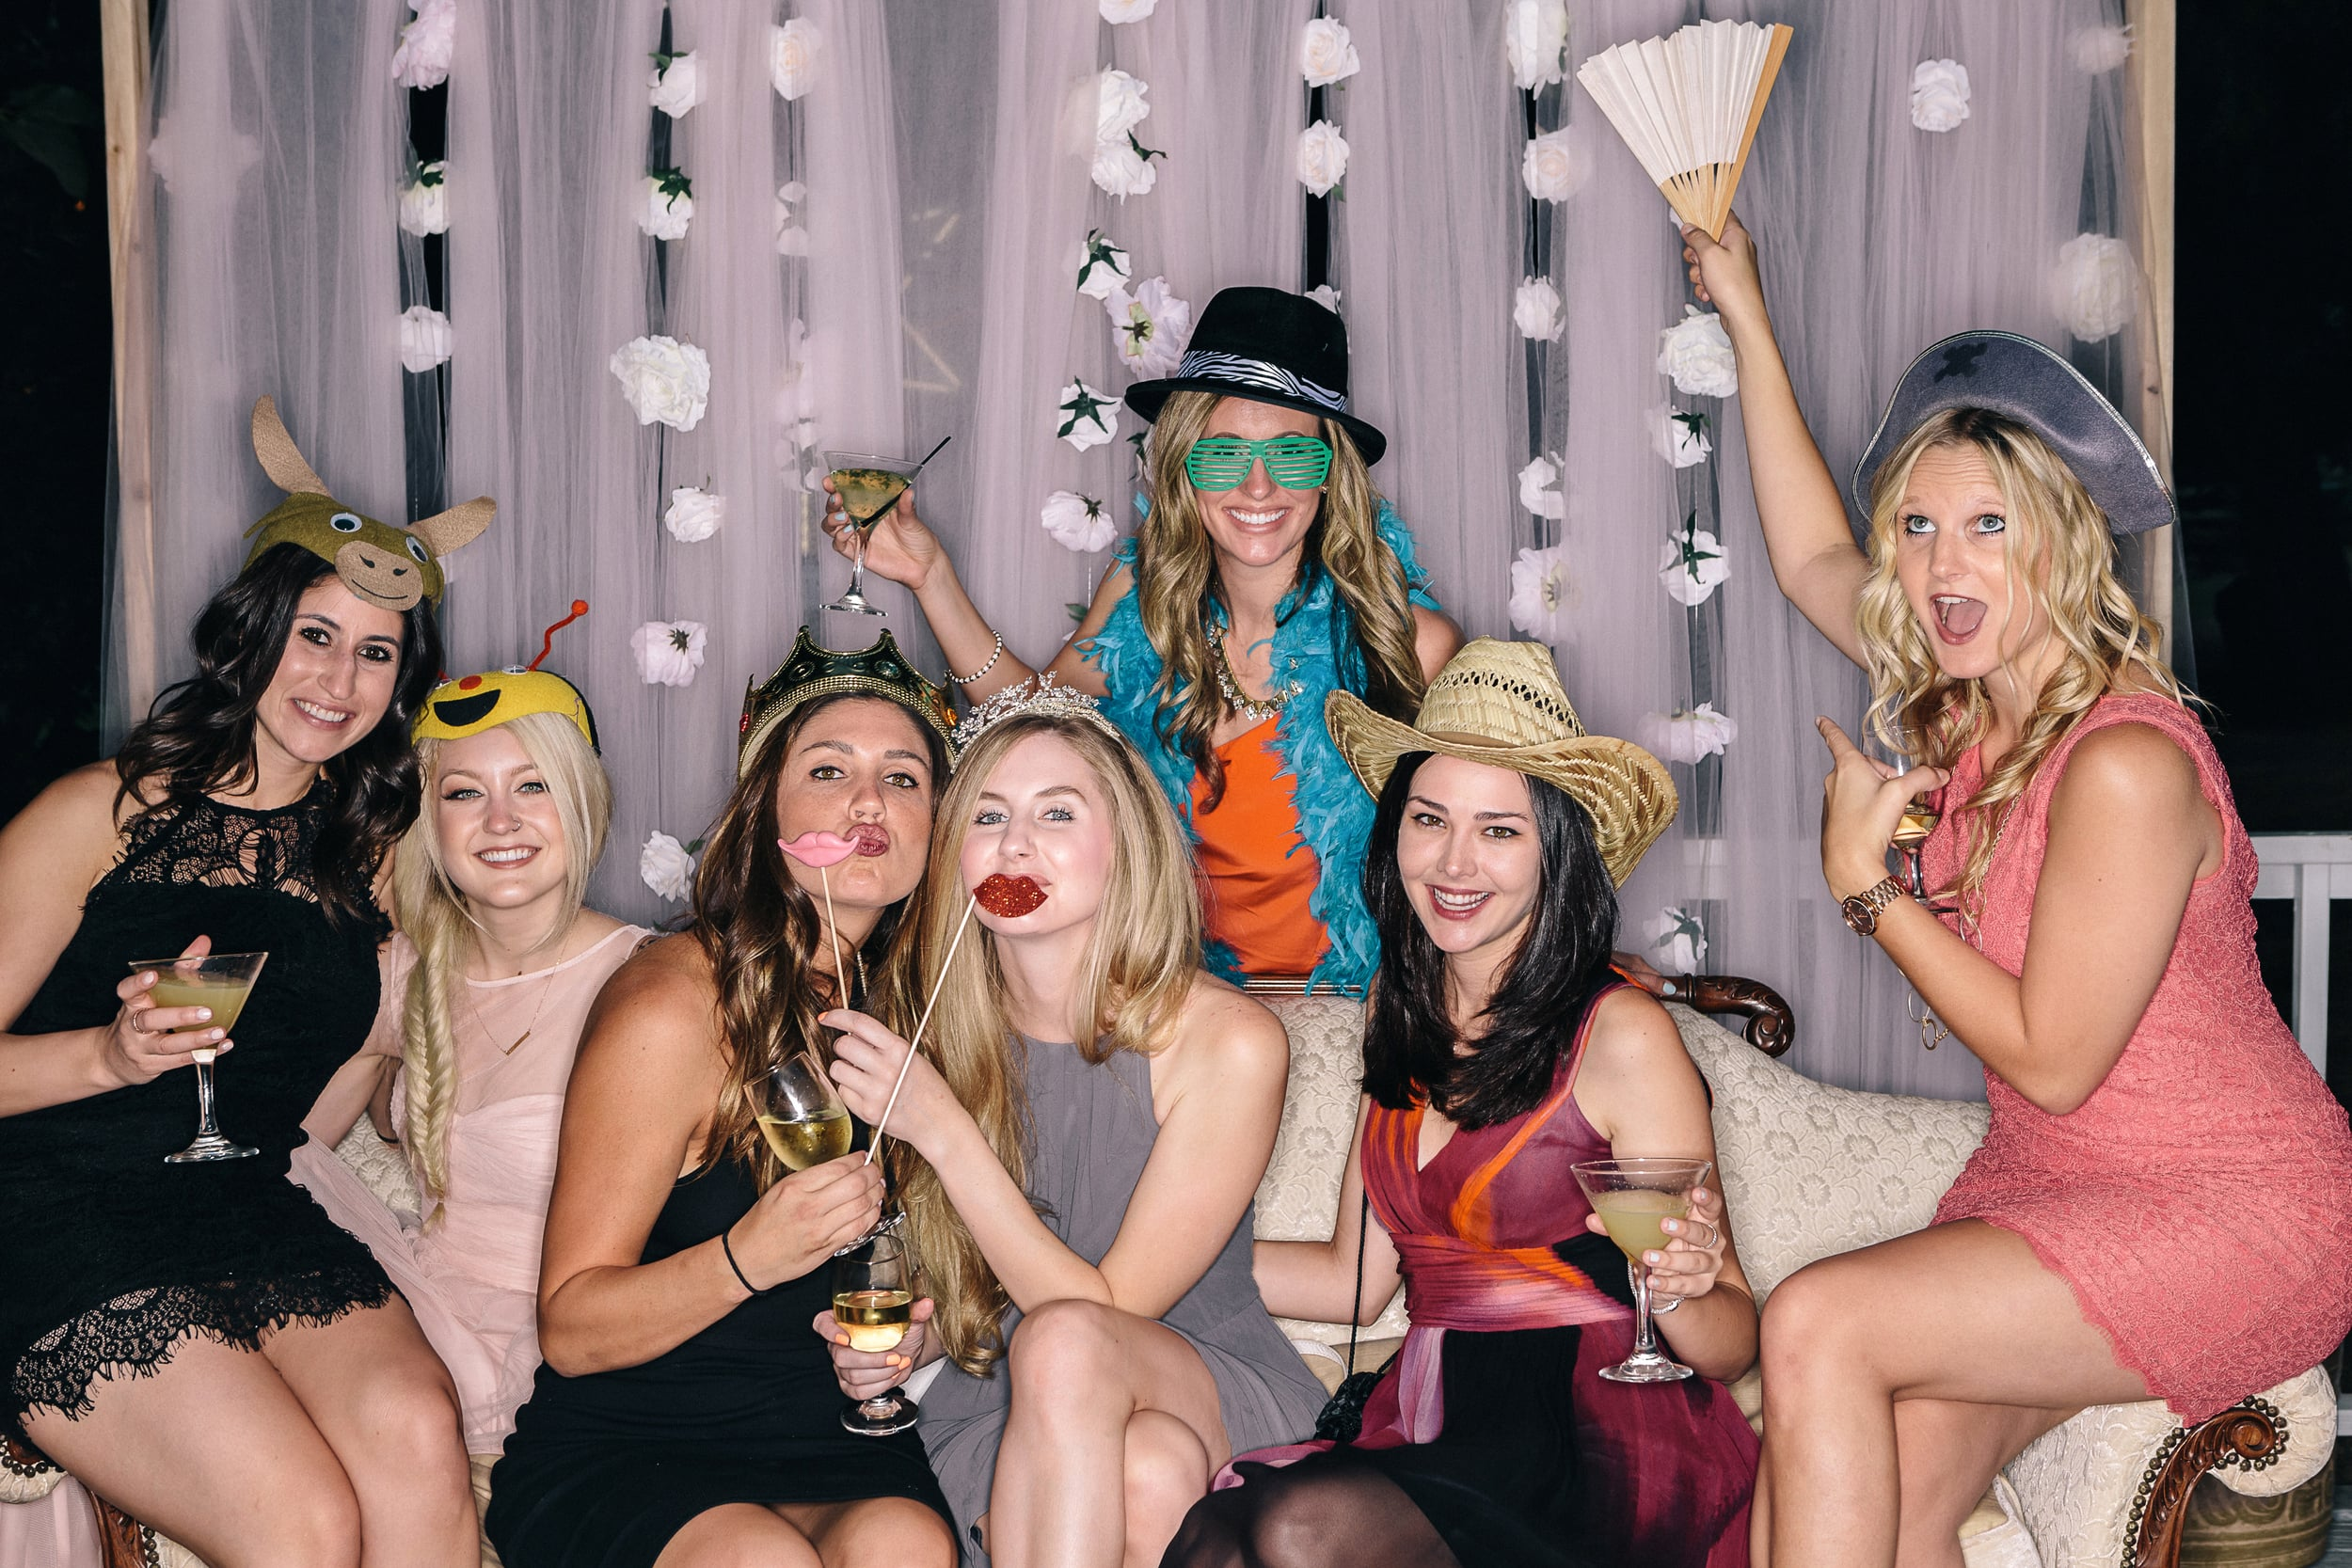 Studio-7-photobooth-orange-county-011.jpg